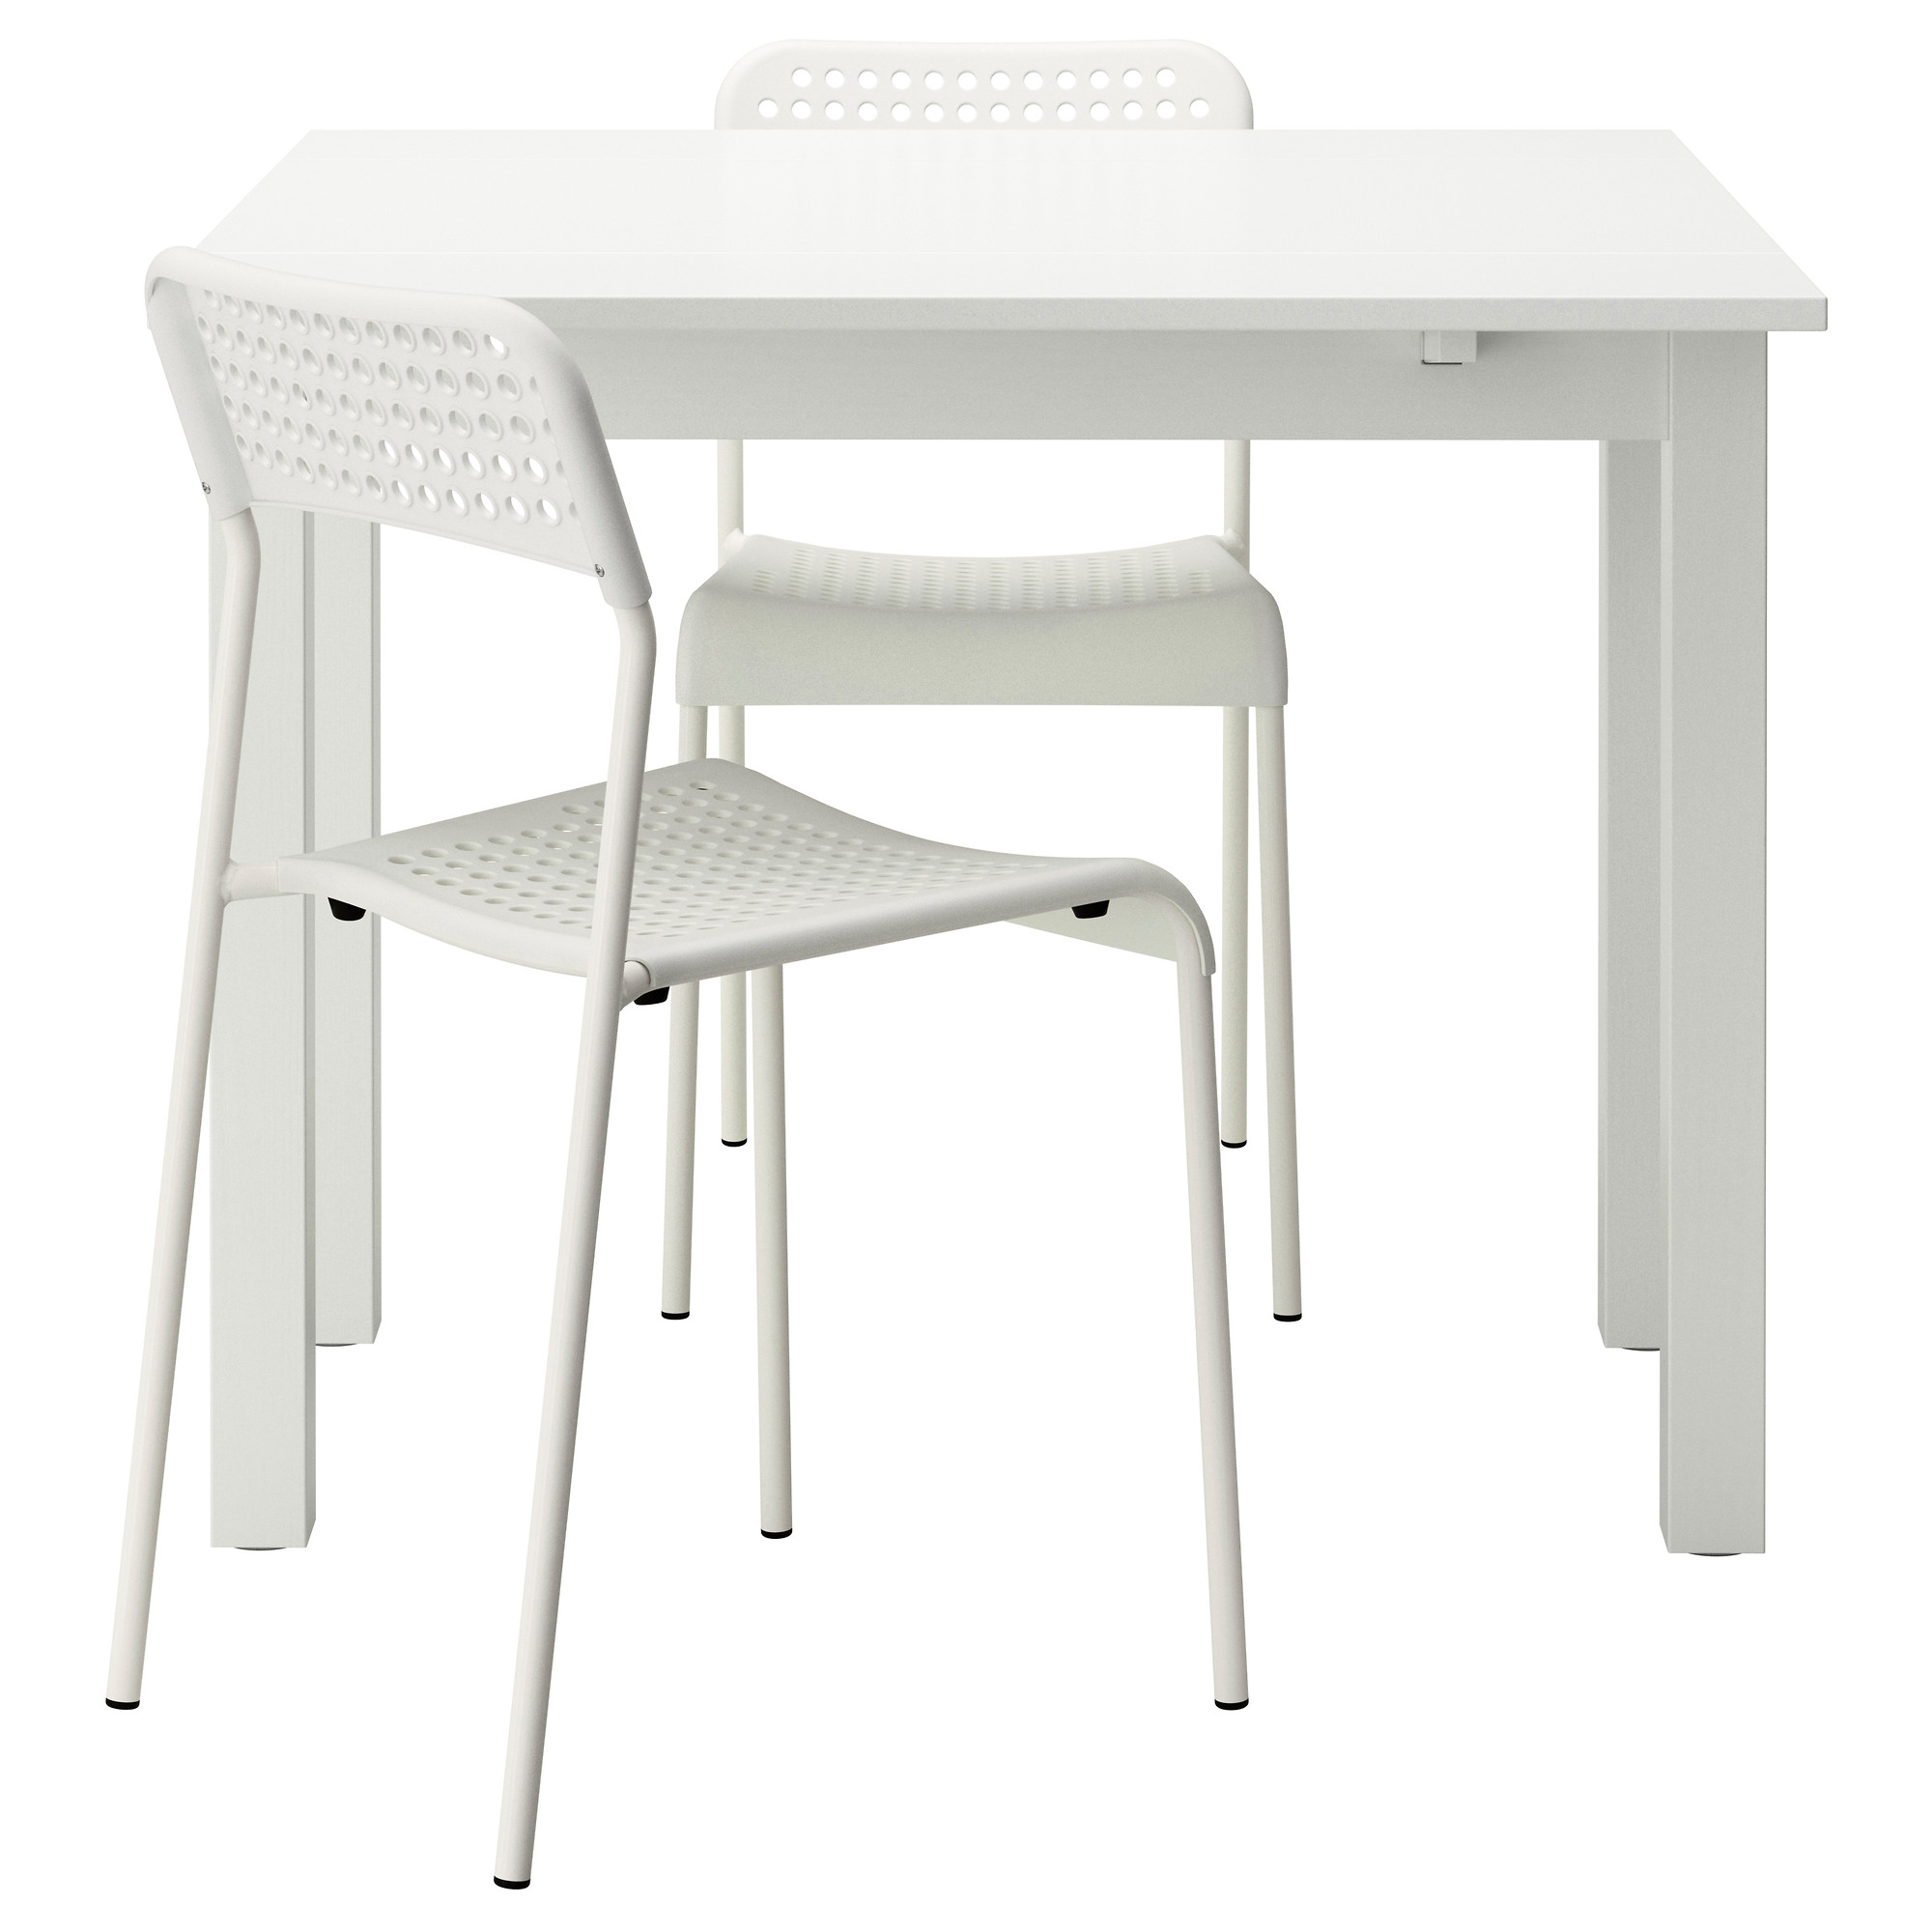 Table et chaise de cuisine ikea table chaise cuisine for Table de fusion ikea